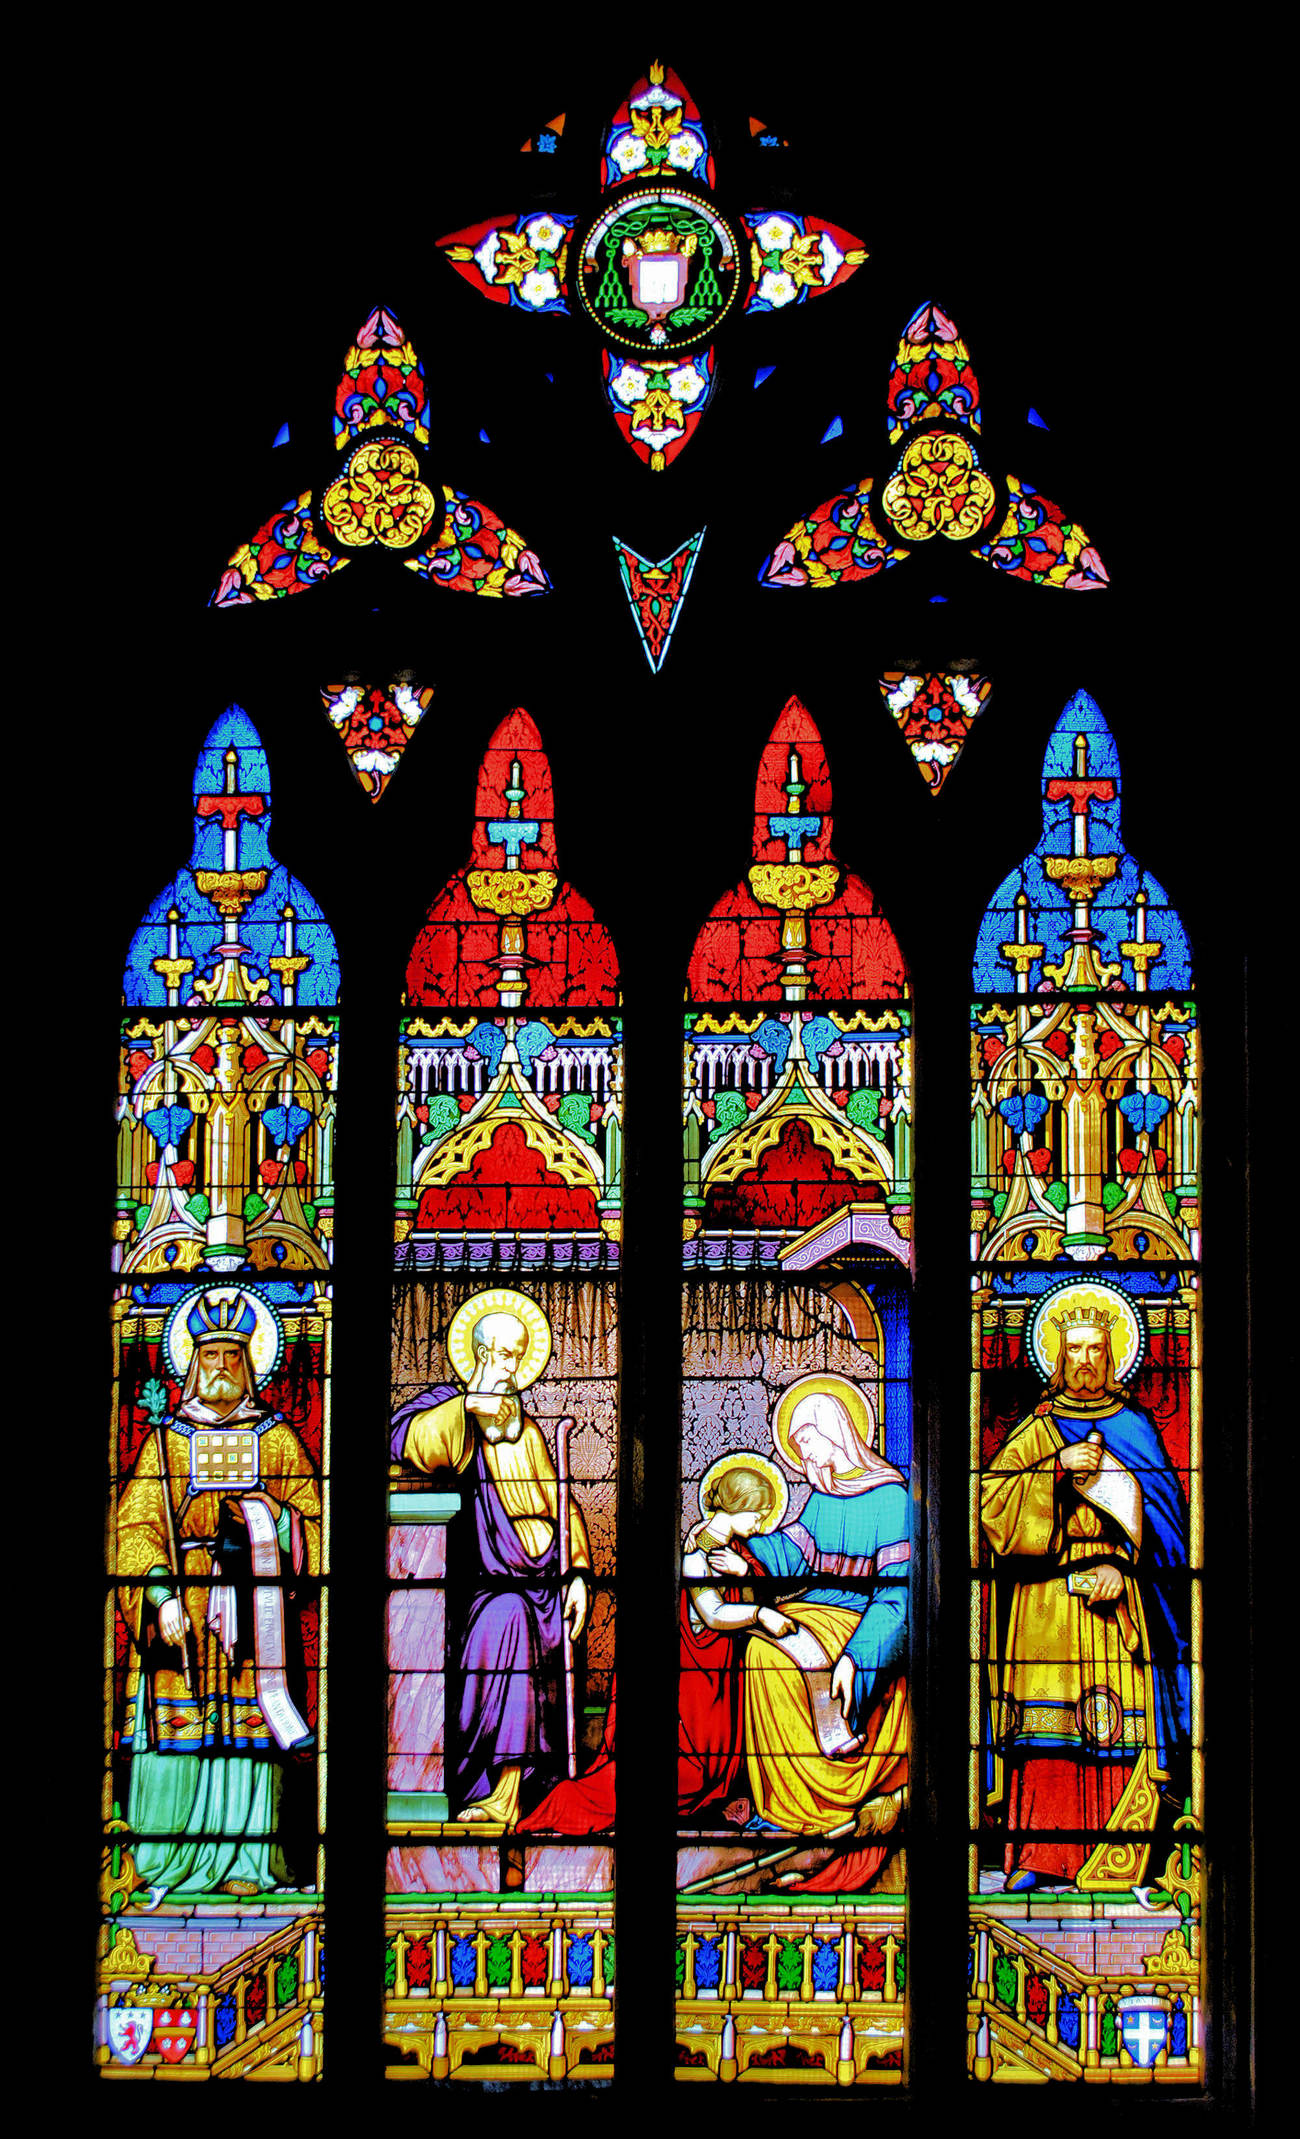 Vitrail - Stained glass window 12 by kordouane